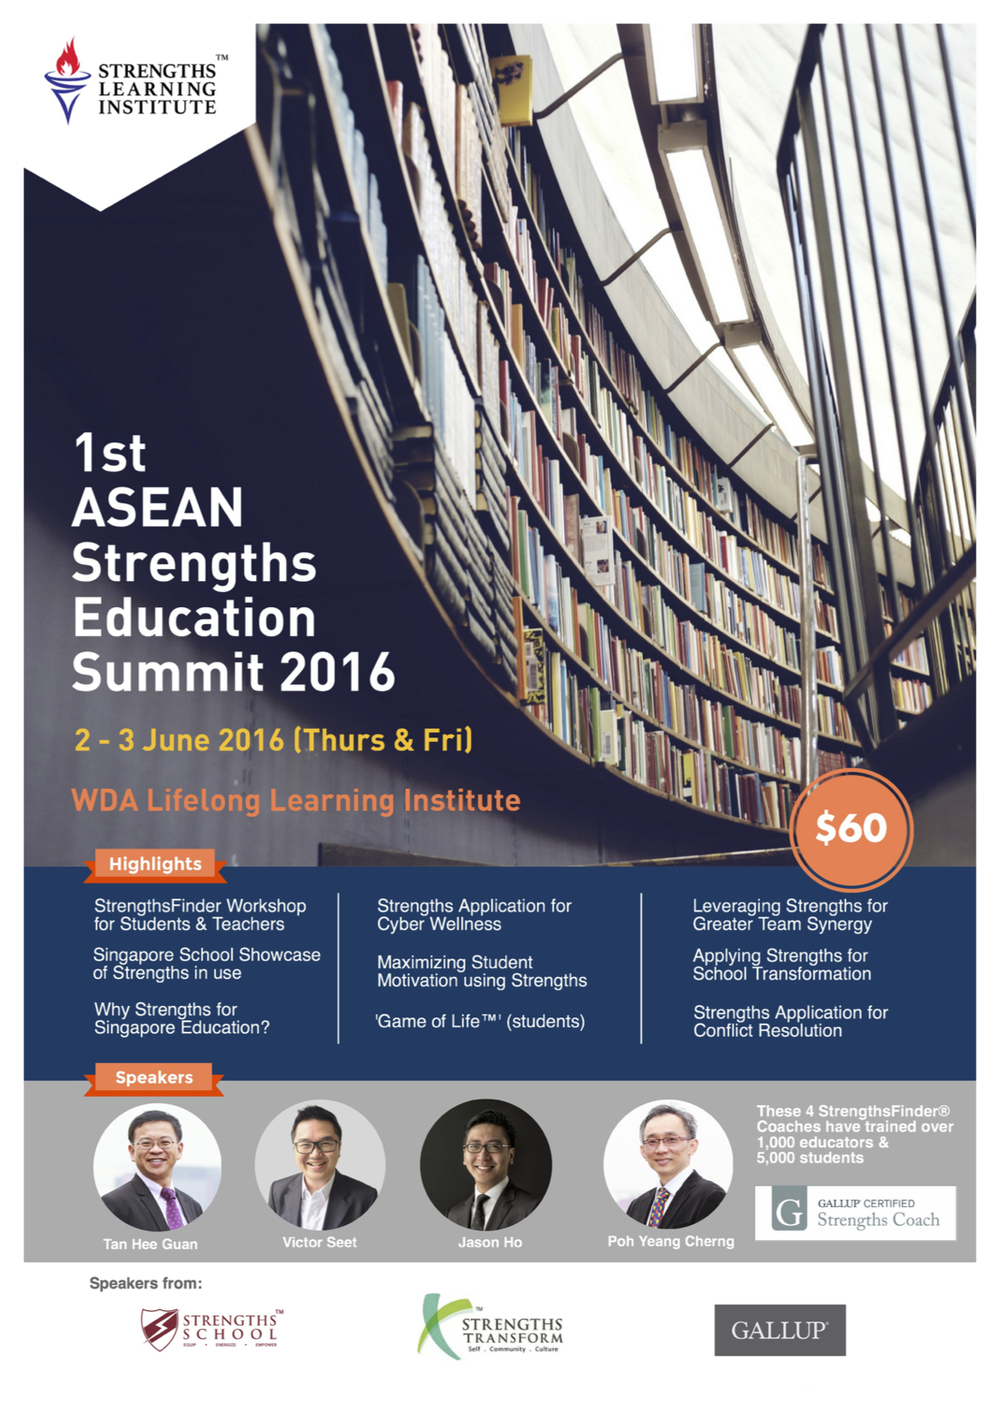 ASEAN Strengths Education Summit 2016 Jason Ho Victor Seet (StrengthsFinder Singapore)